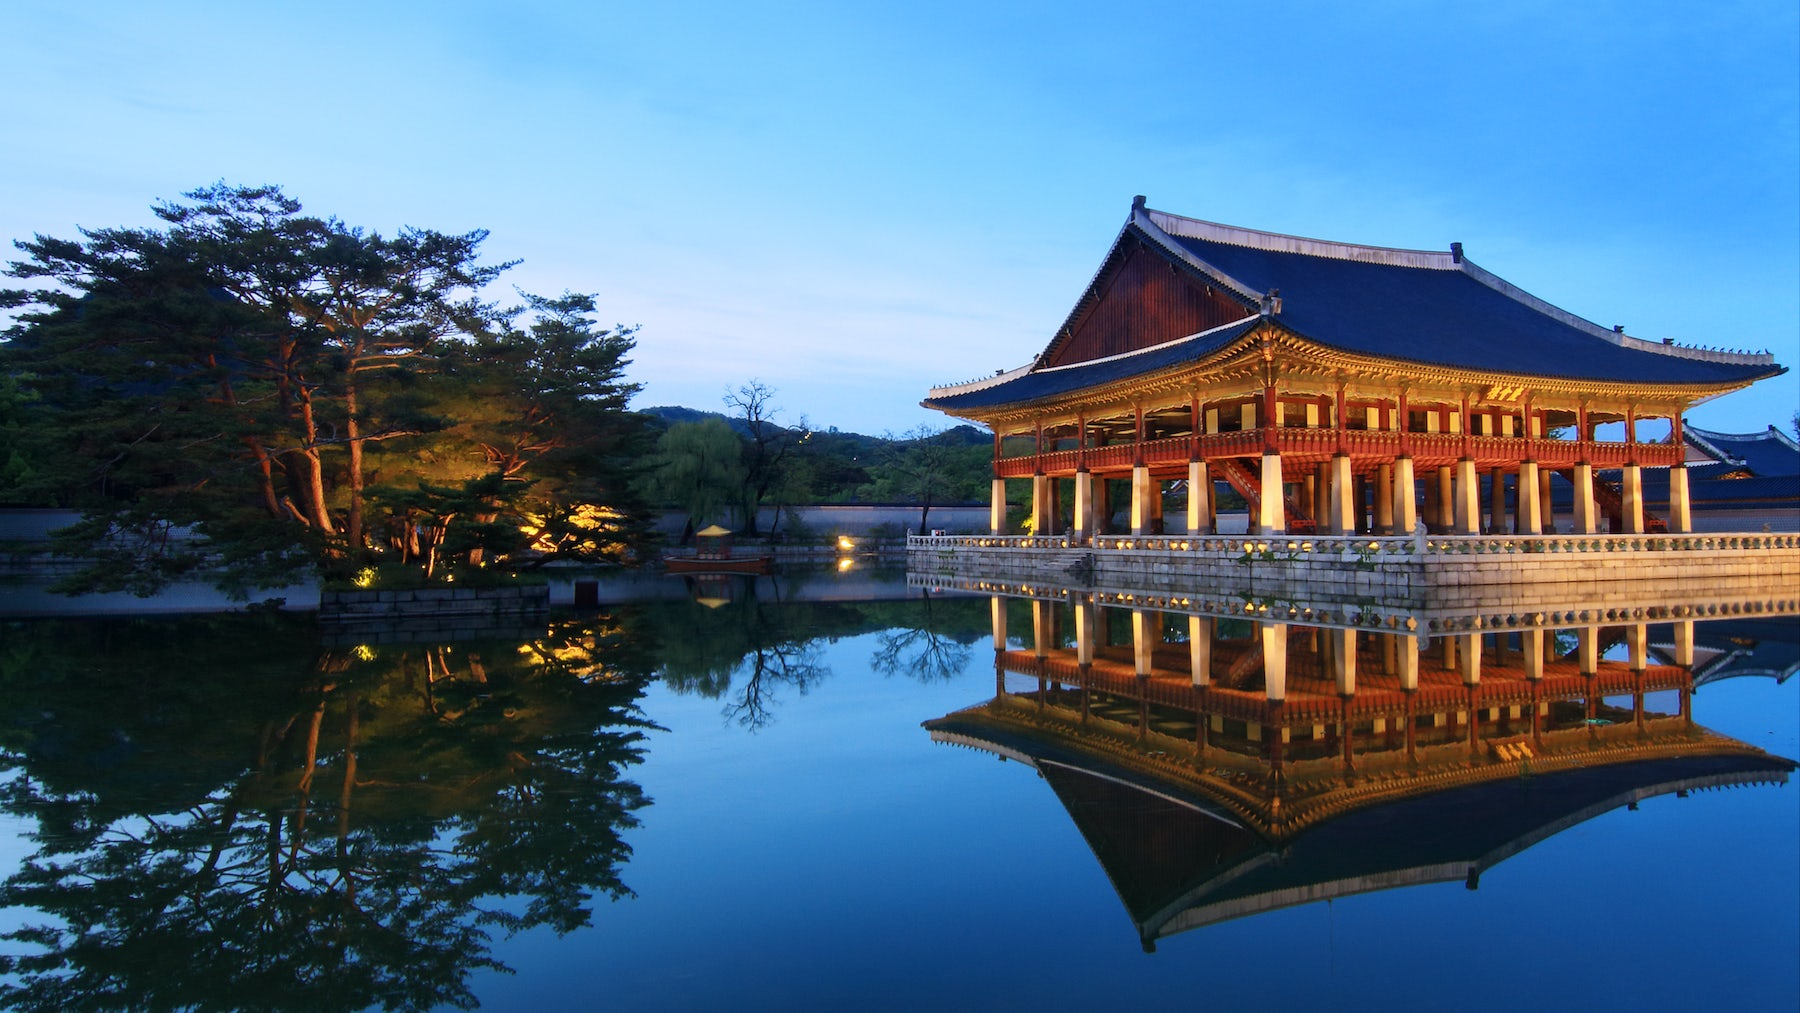 King's Palace in Seoul, South Korea | Source: Shutterstock